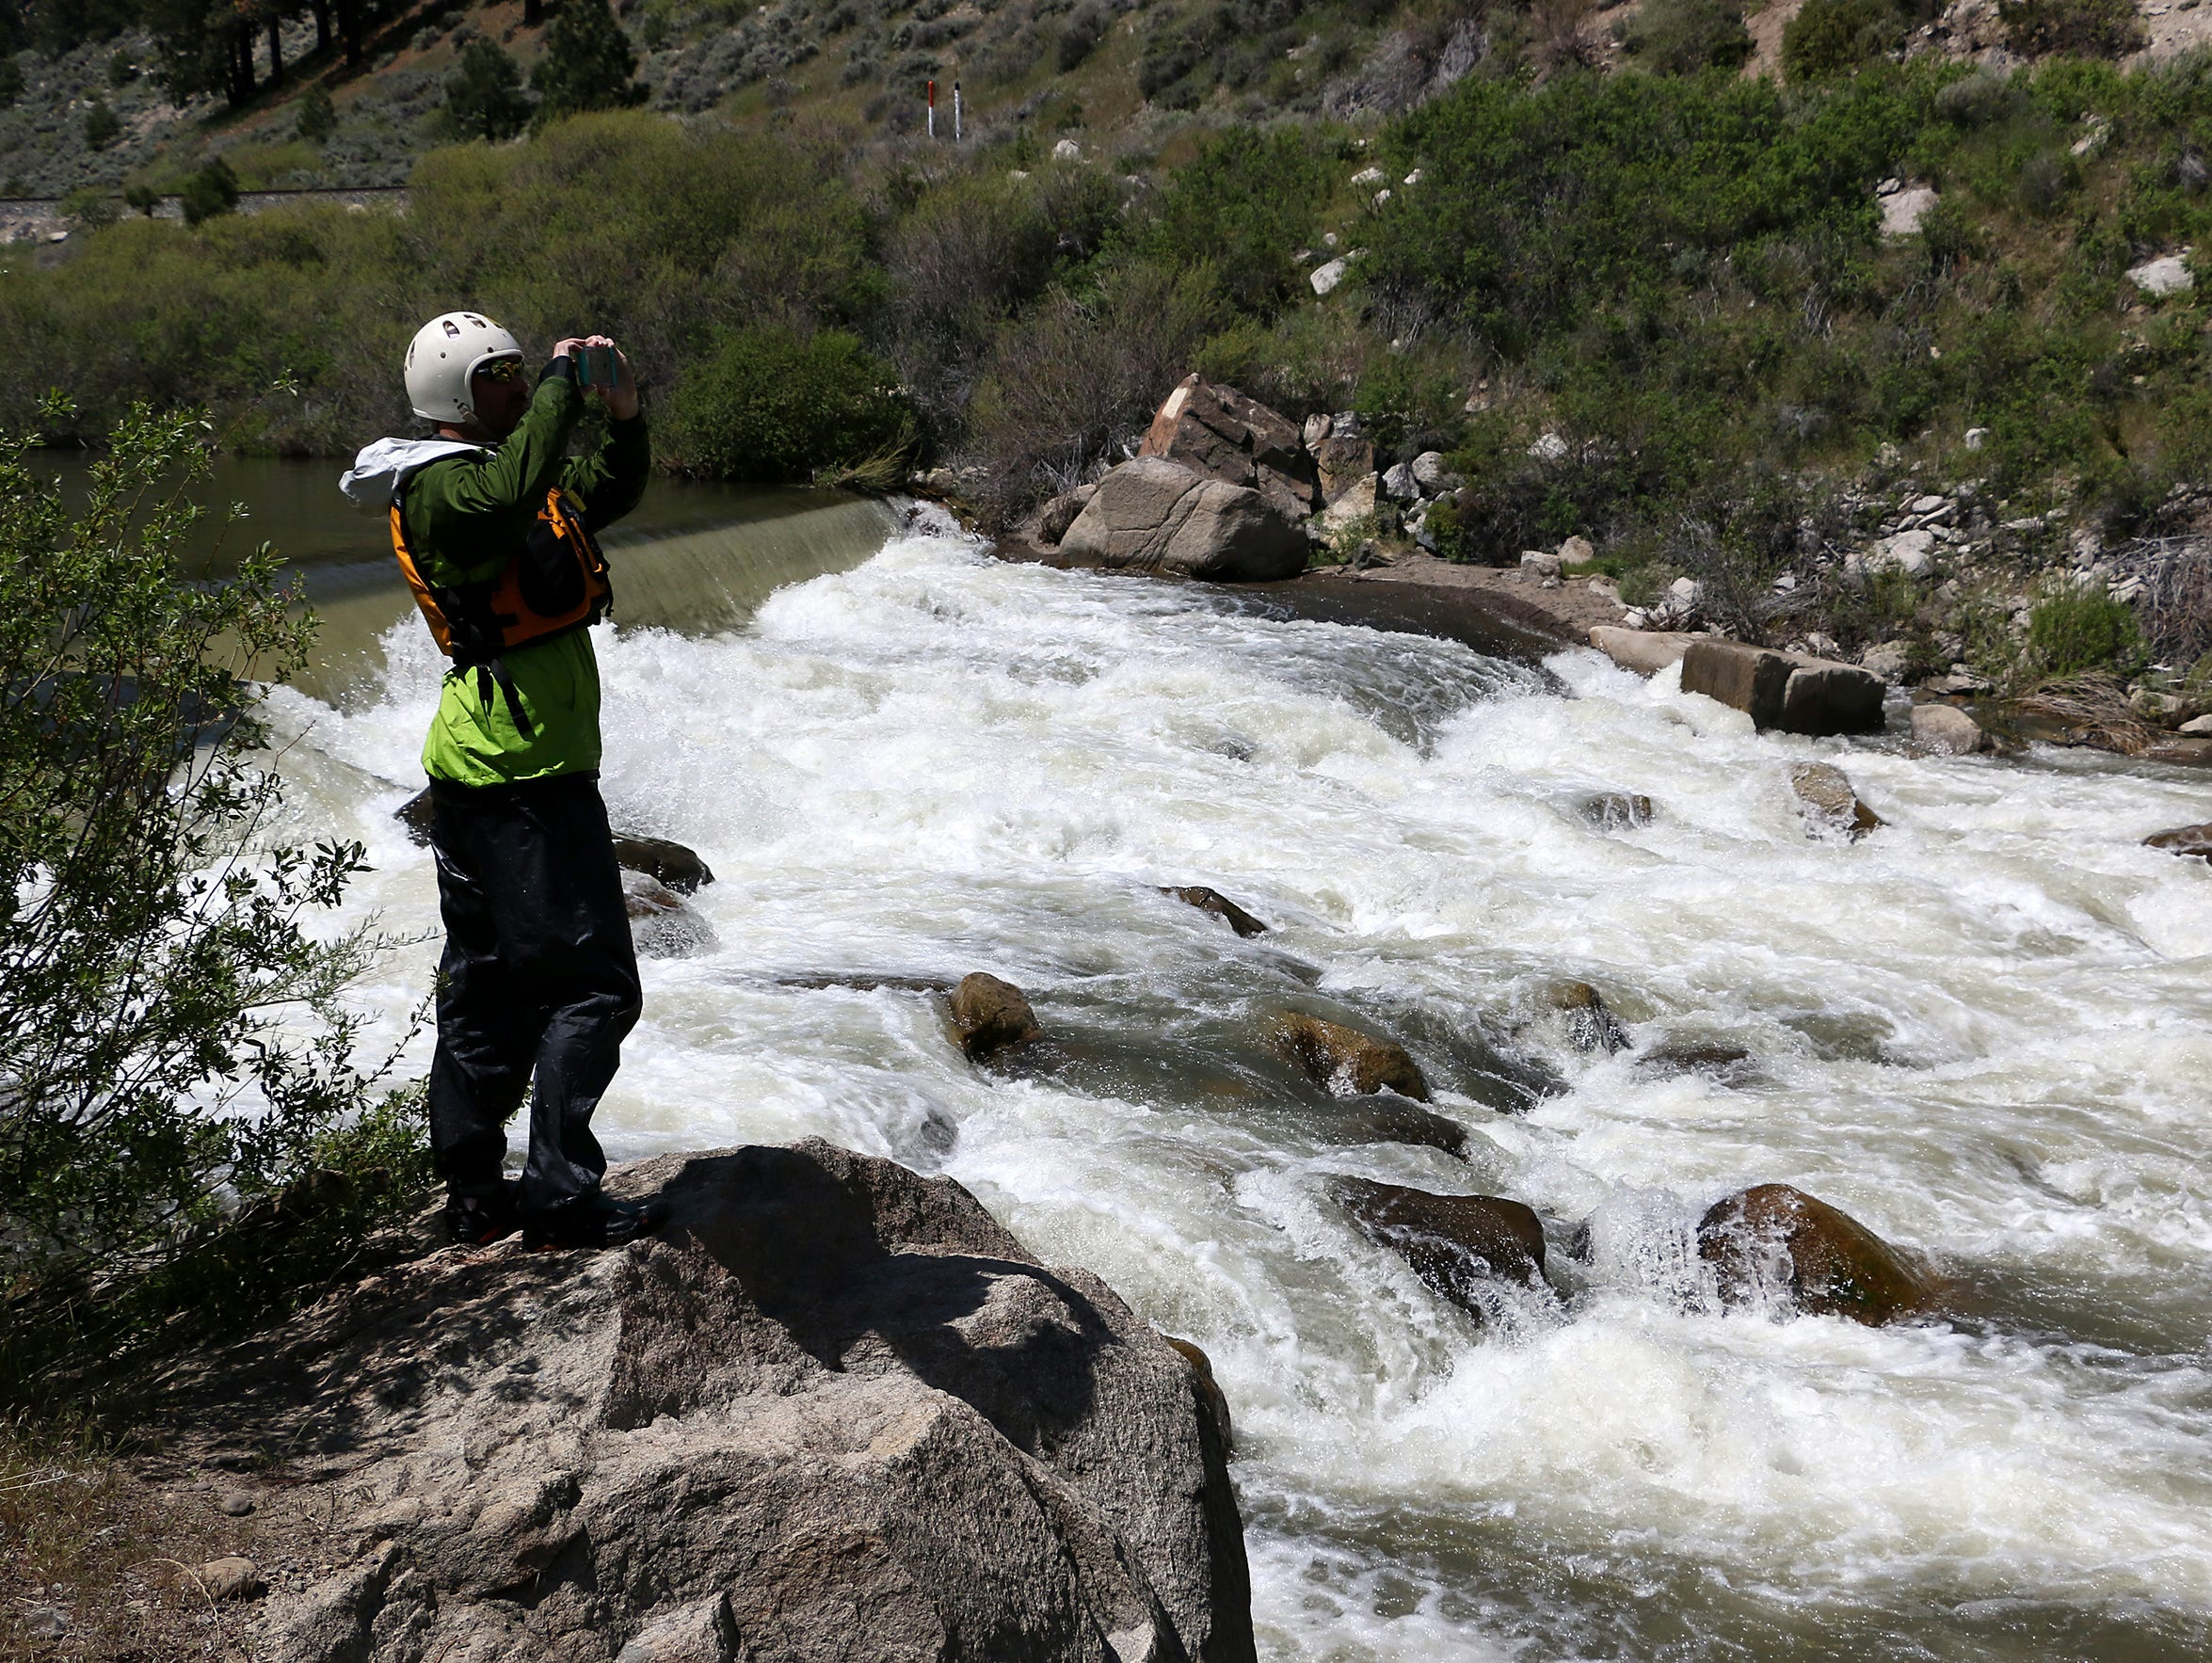 Scouting rapids on the Truckee River. RGJ reporters